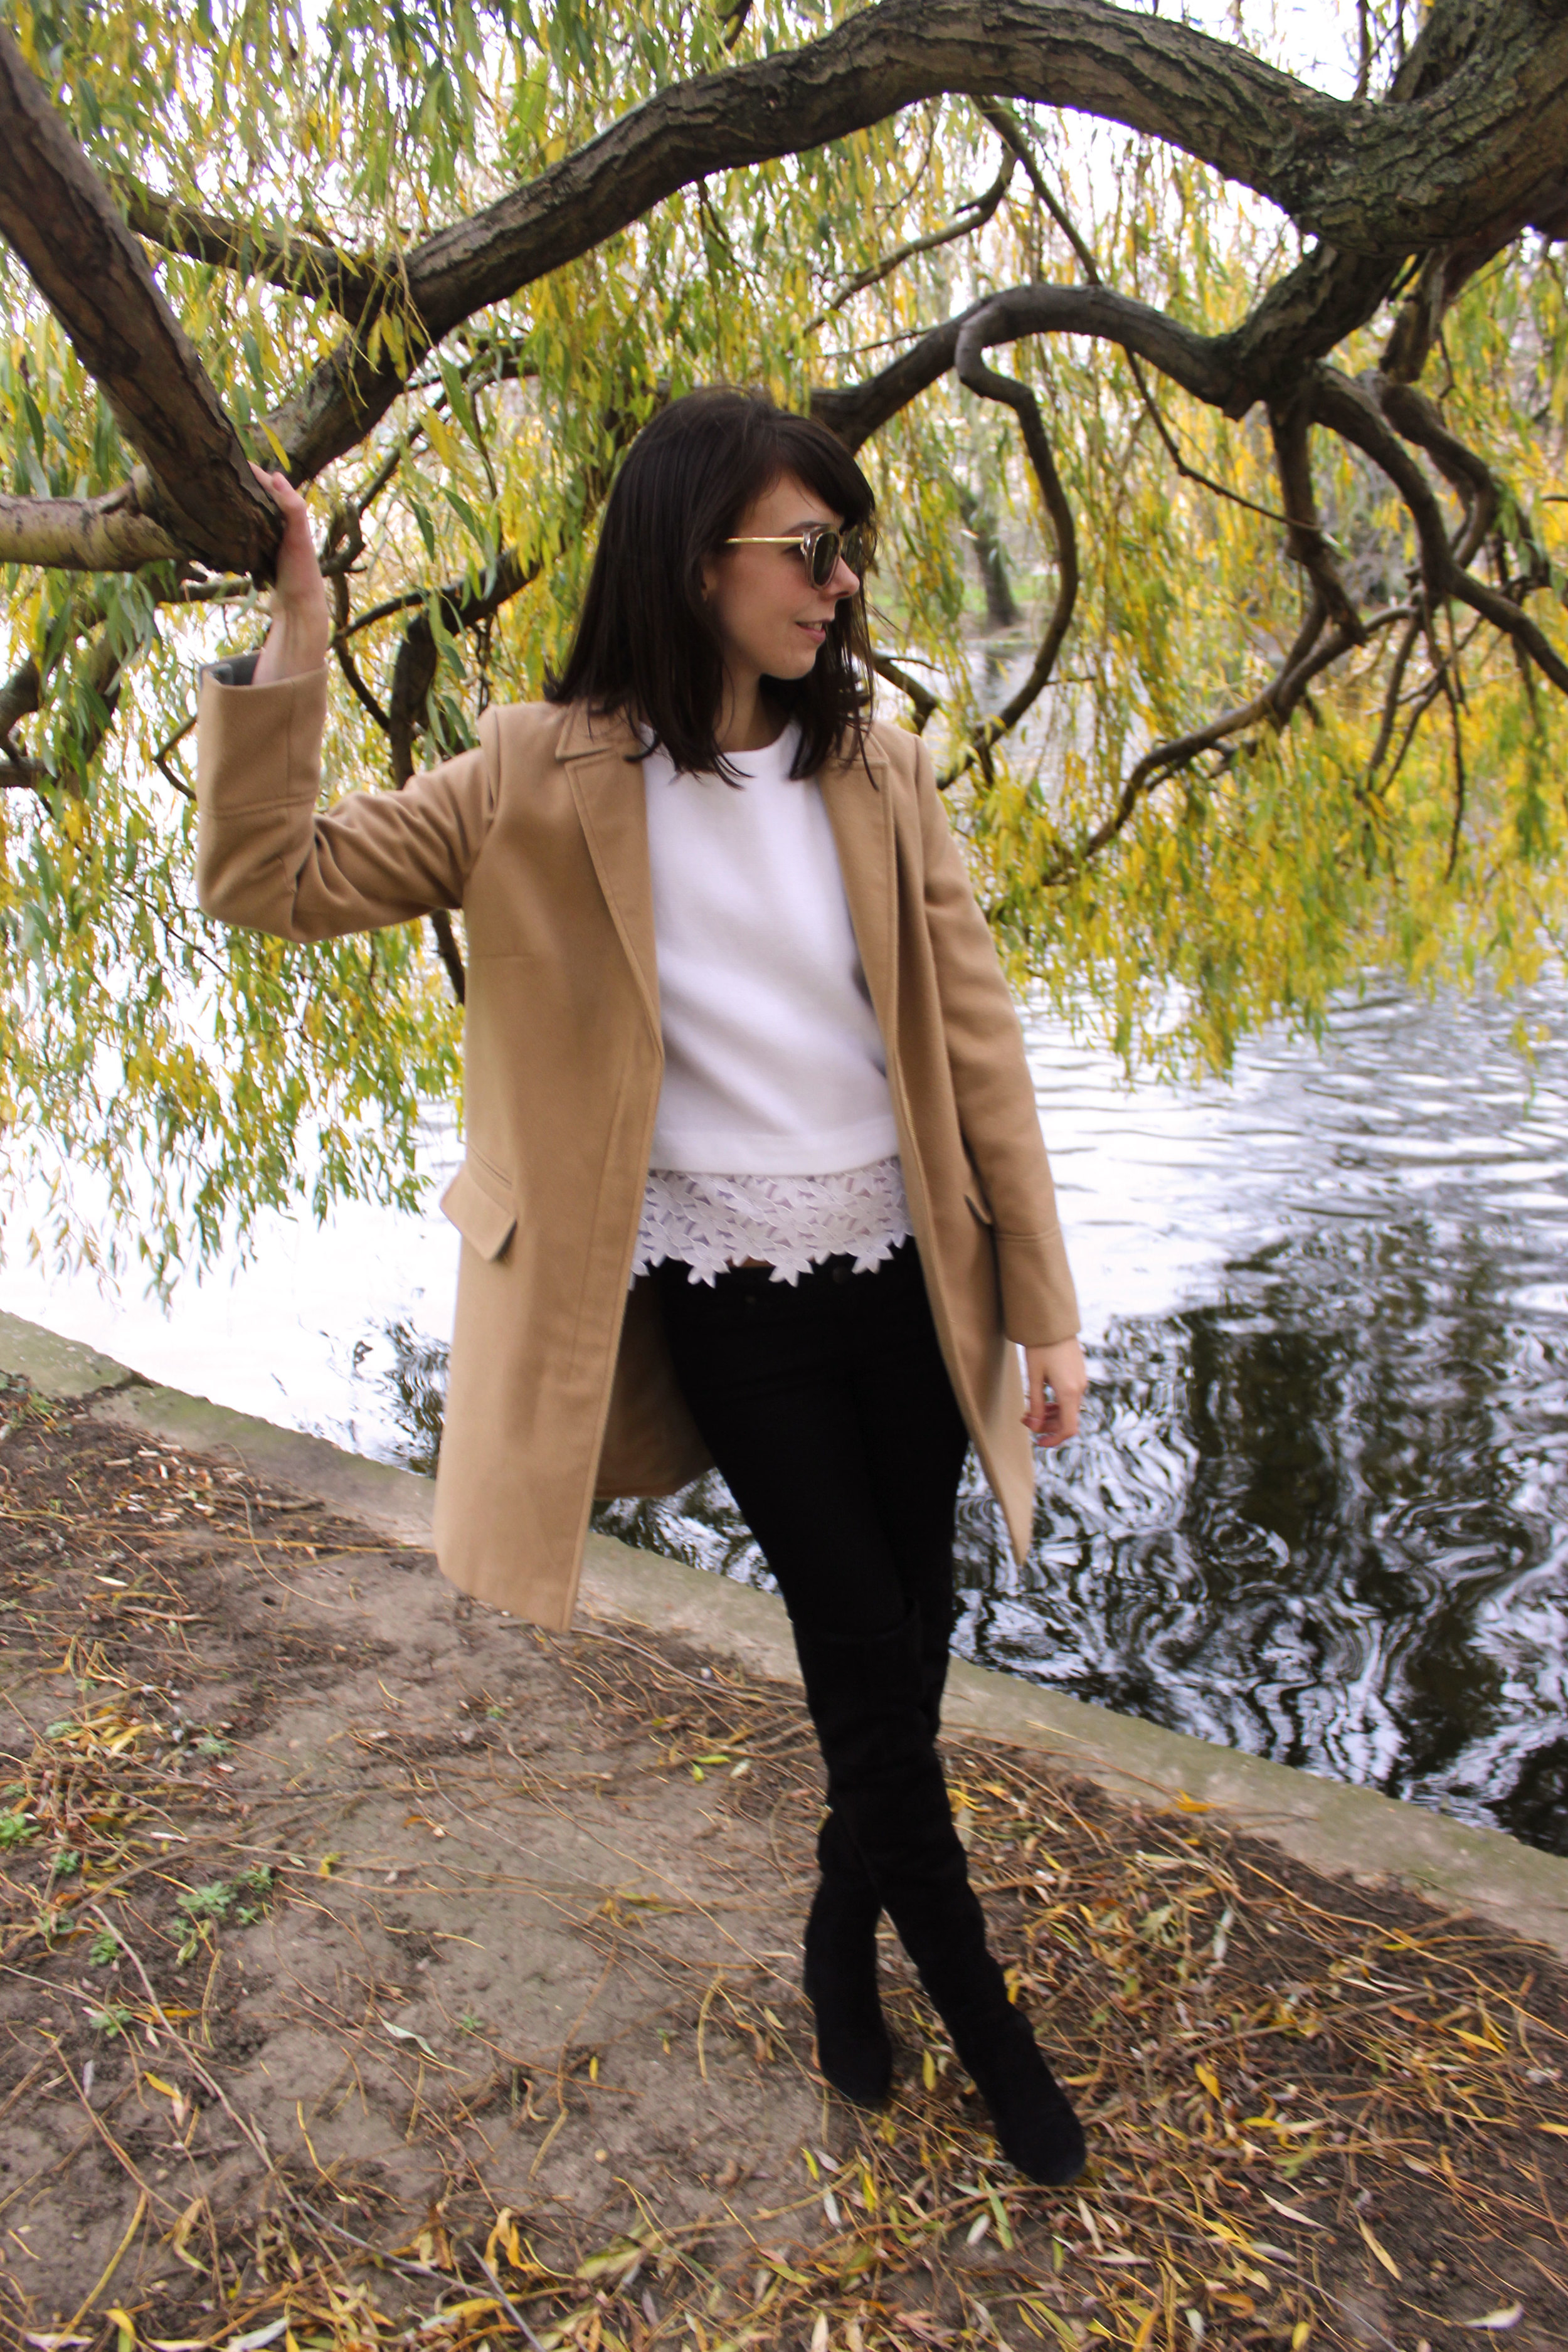 Wandering beneath the willows in Regent's Park London wearing a Topshop camel coat and suede over the knee boots.